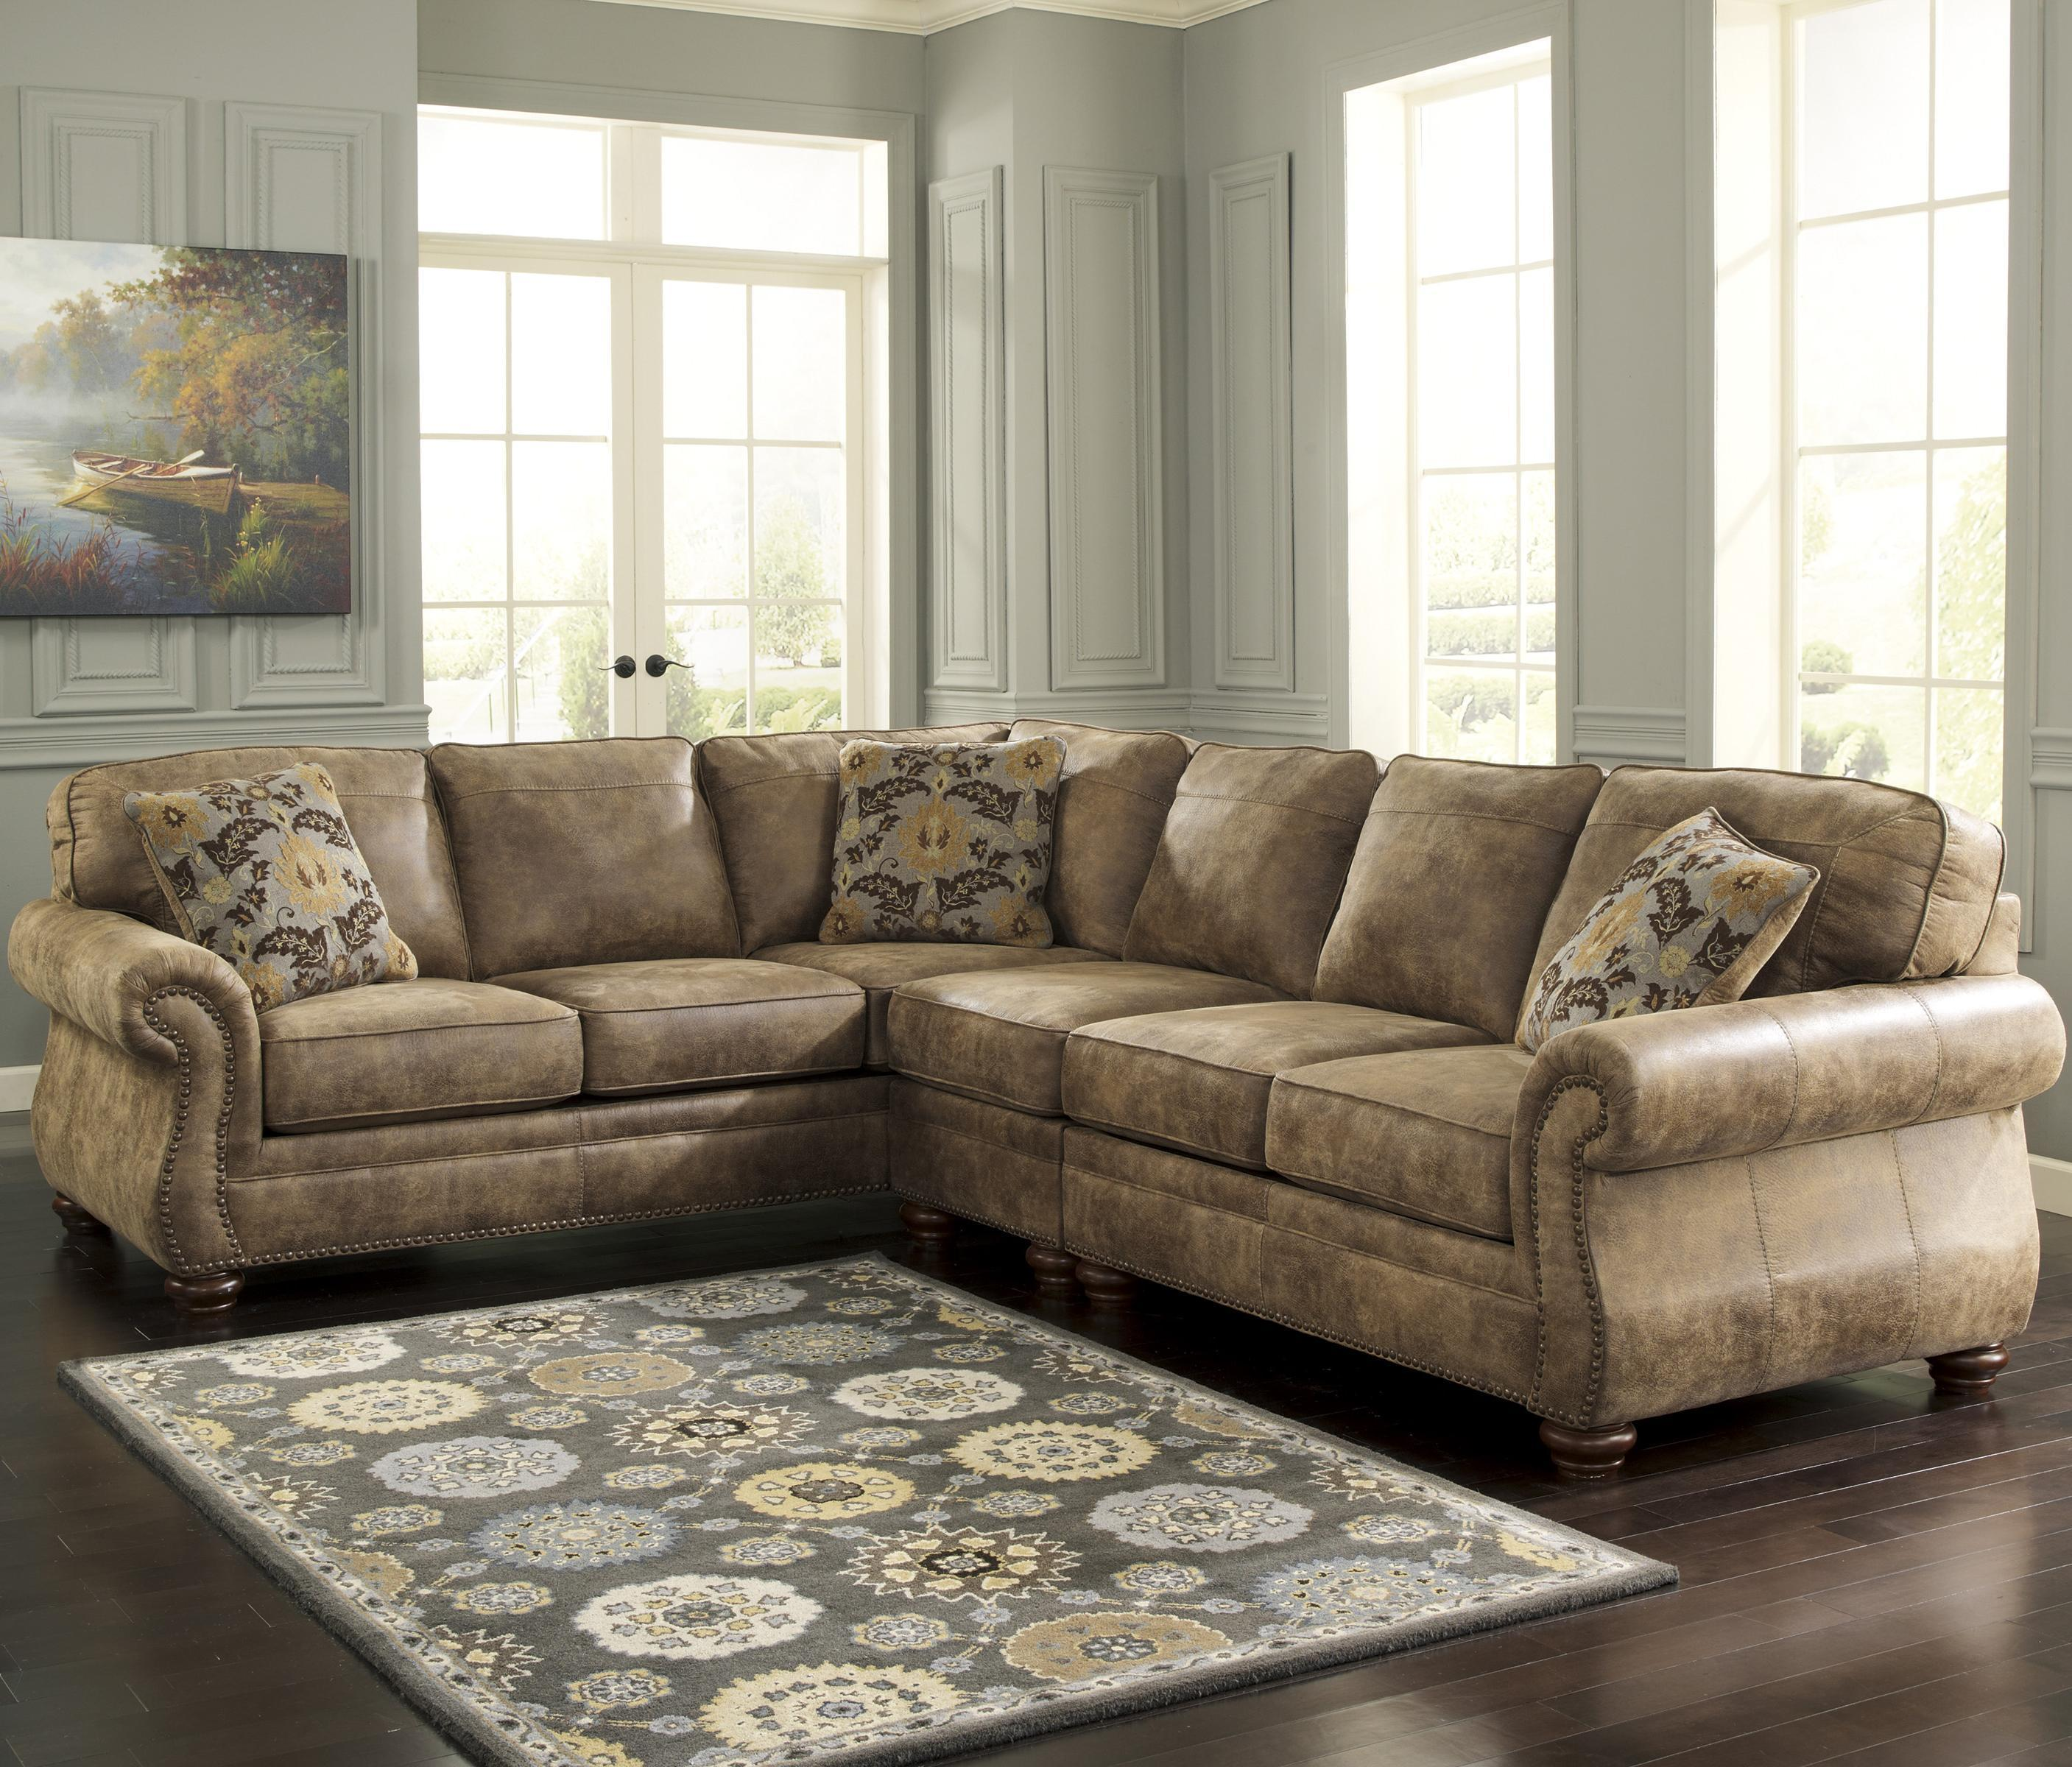 Signature Design by Ashley Larkinhurst - Earth Sectional with LAF Sofa - Item Number: 3190166+46+56